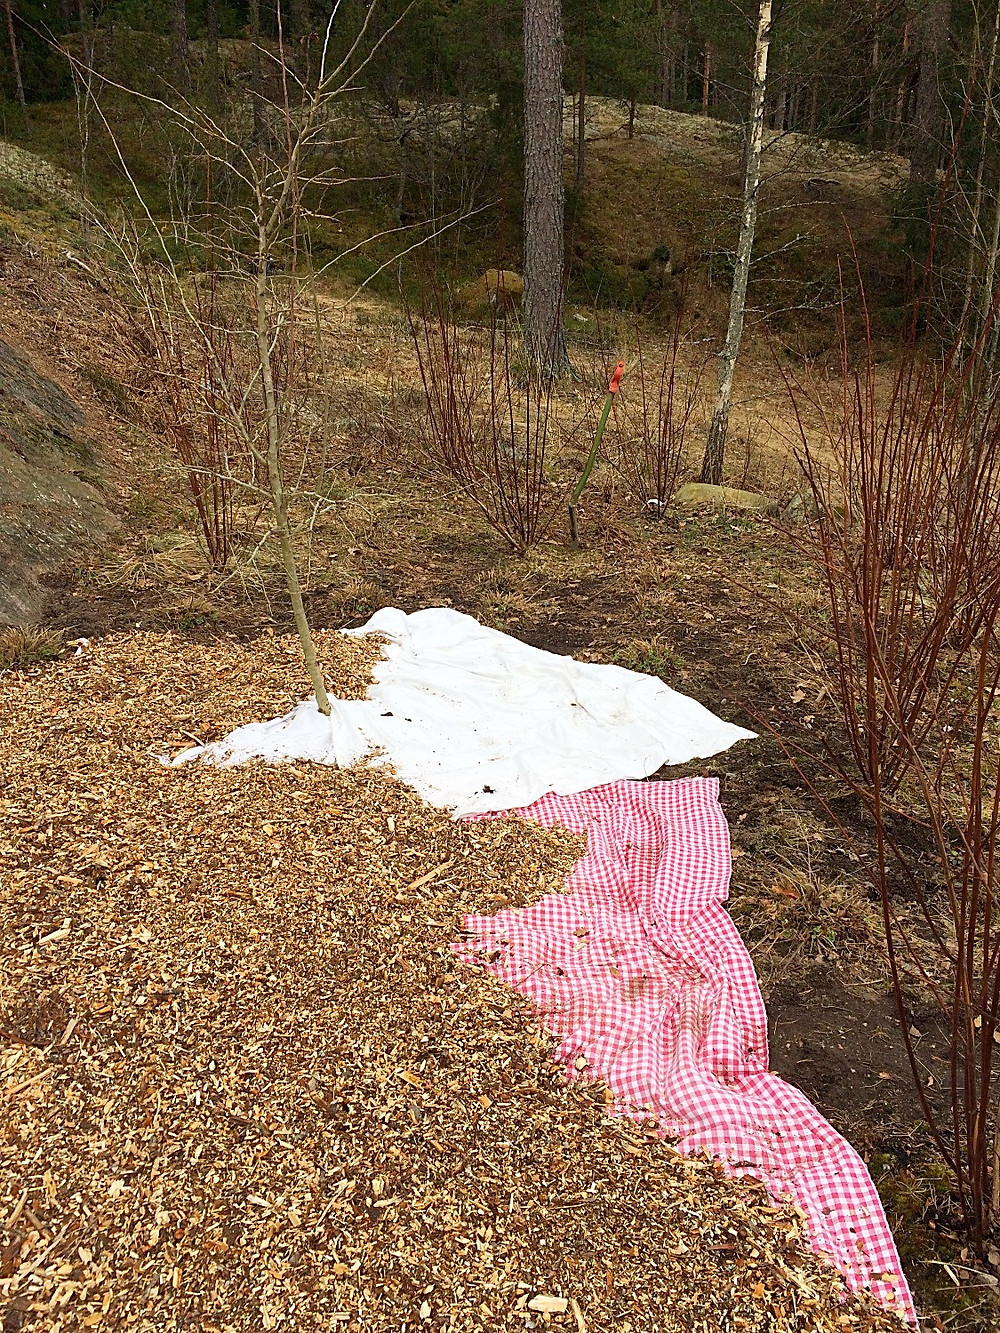 Covering up bare soil with cloth and mulch